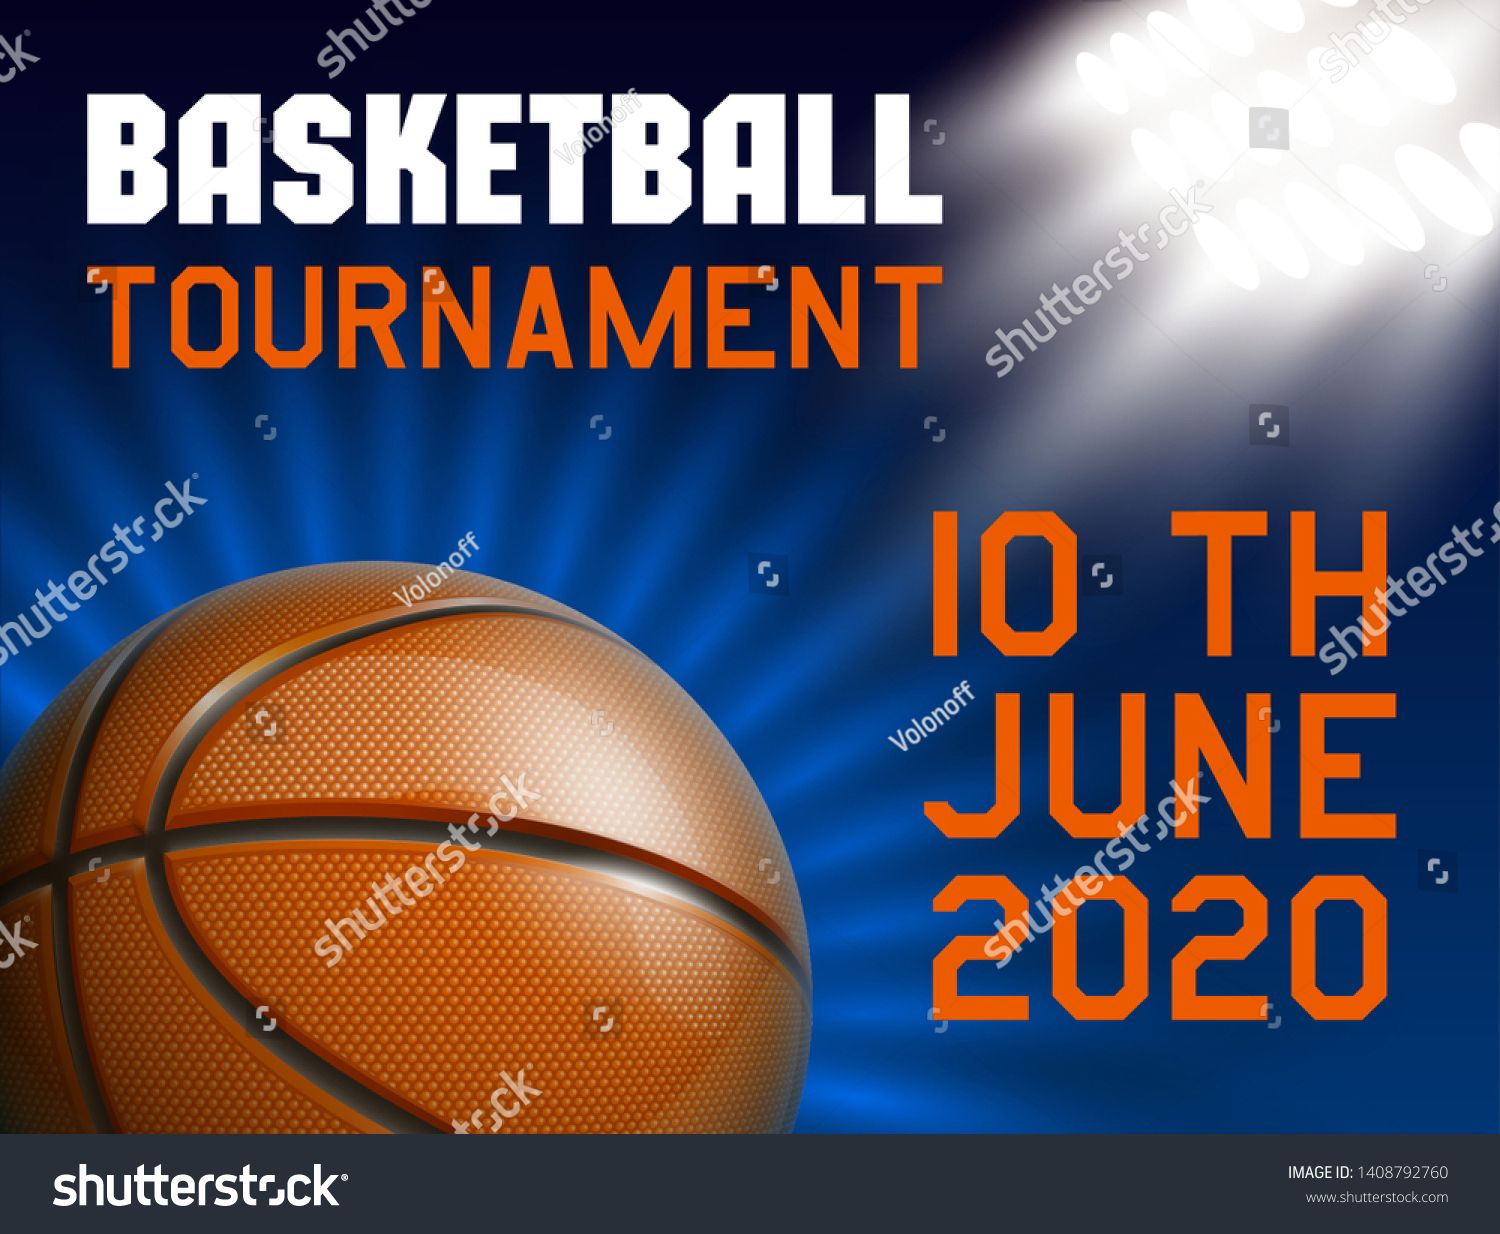 Basketball Modern Sports Poster Design Banner With 3d Realistic Shiny Ball Basketball Tournament Illustration B Sport Poster Design Banner Design Sport Poster